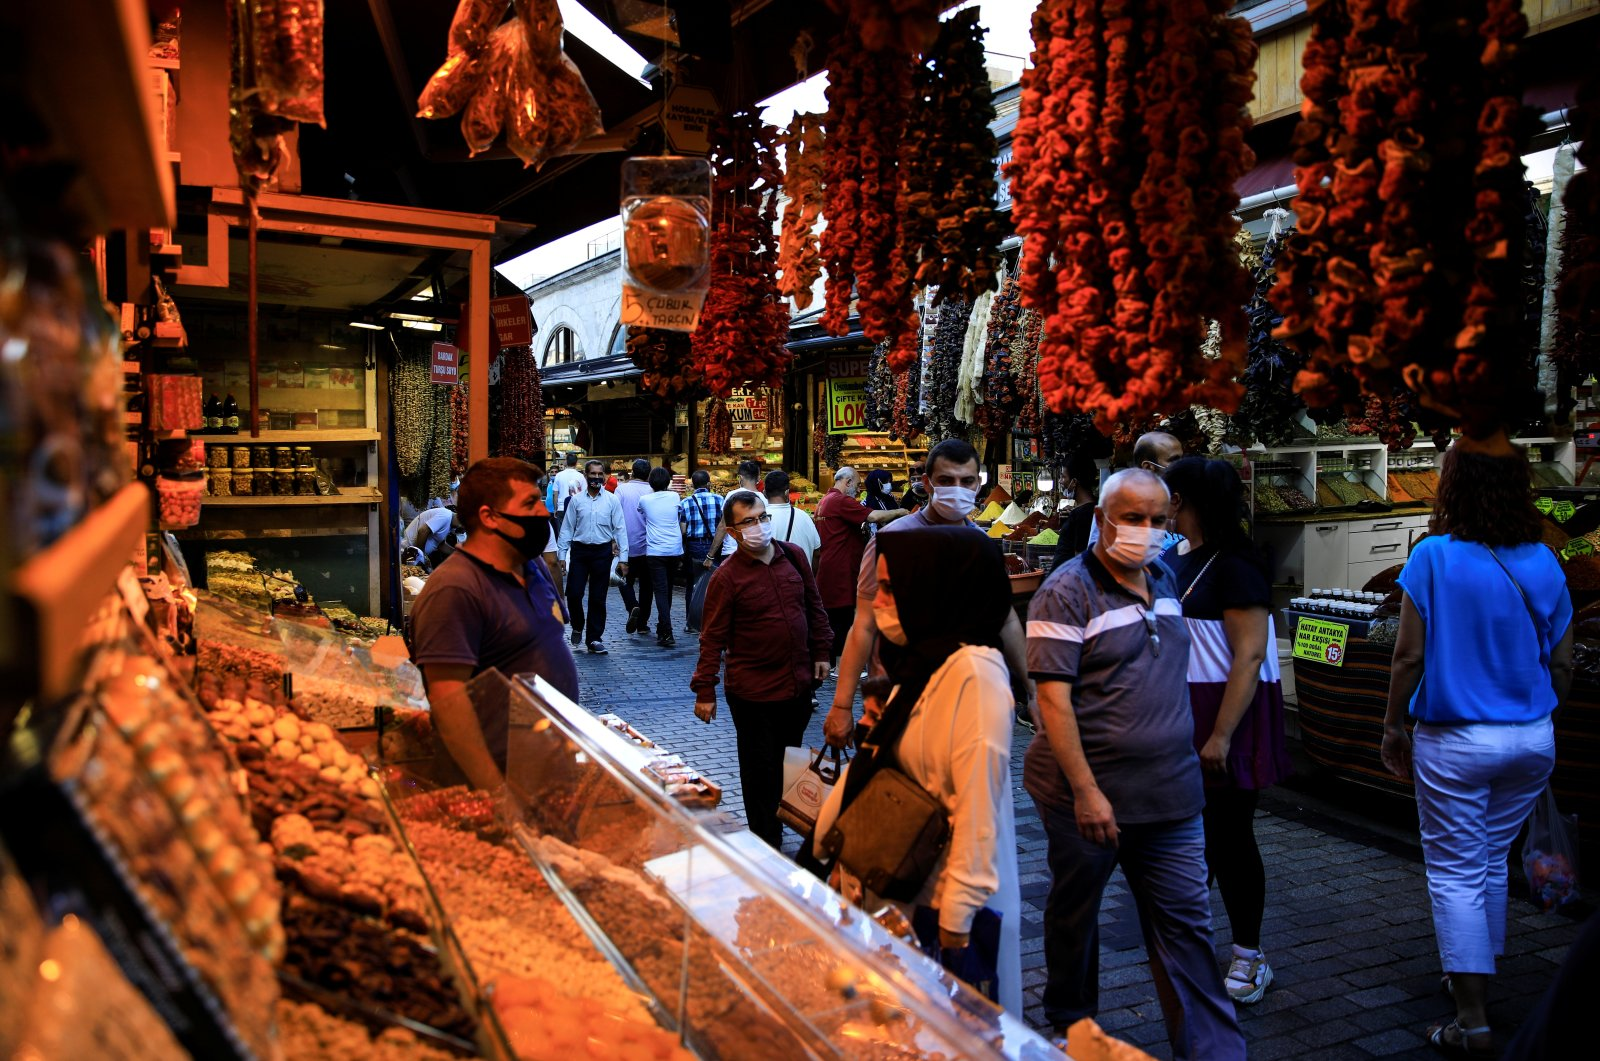 People shop at the Spice Market also known as the Egyptian Bazaar as the outbreak of the coronavirus (COVID-19) continues, in Istanbul, Turkey September 9, 2020. (Reuters Photo)